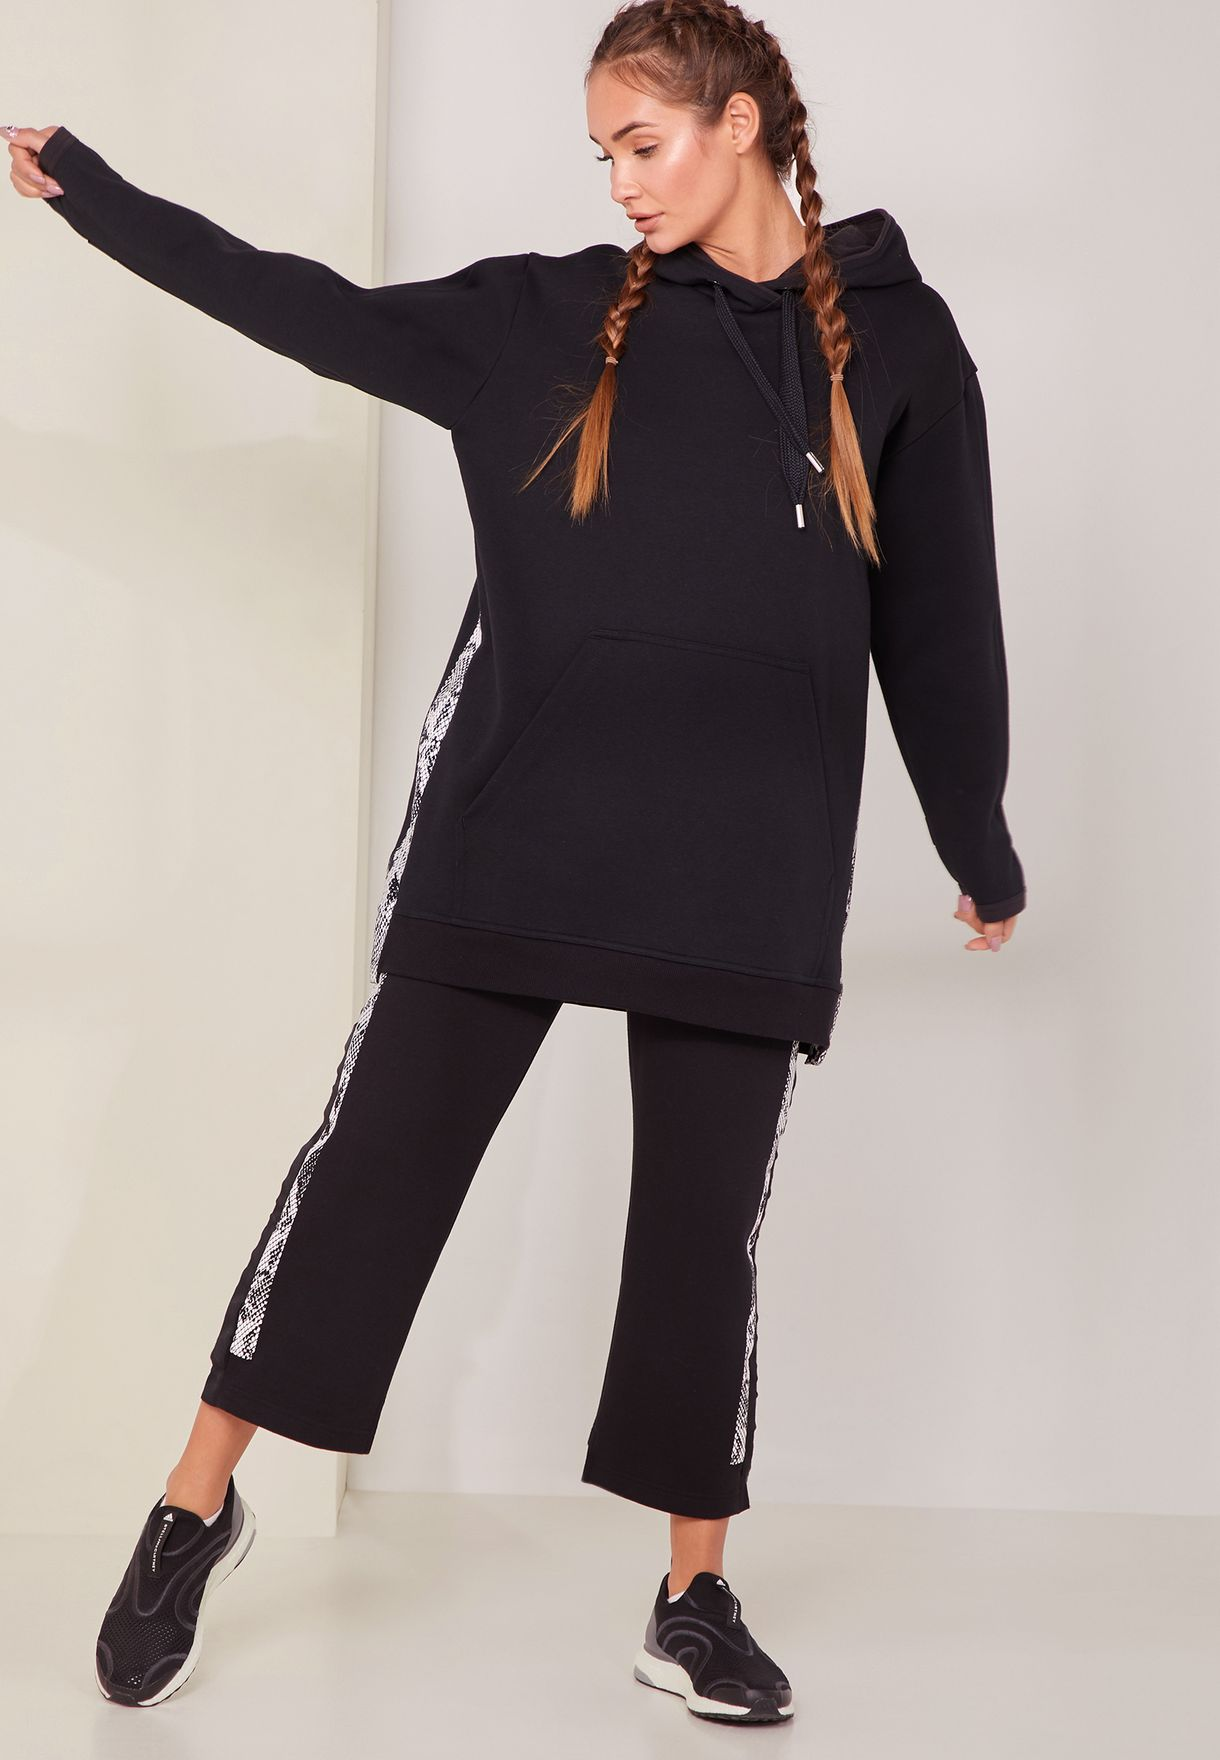 a19a106c3aa0 Shop adidas by Stella McCartney black Cropped Sweatpants DT9224 for ...